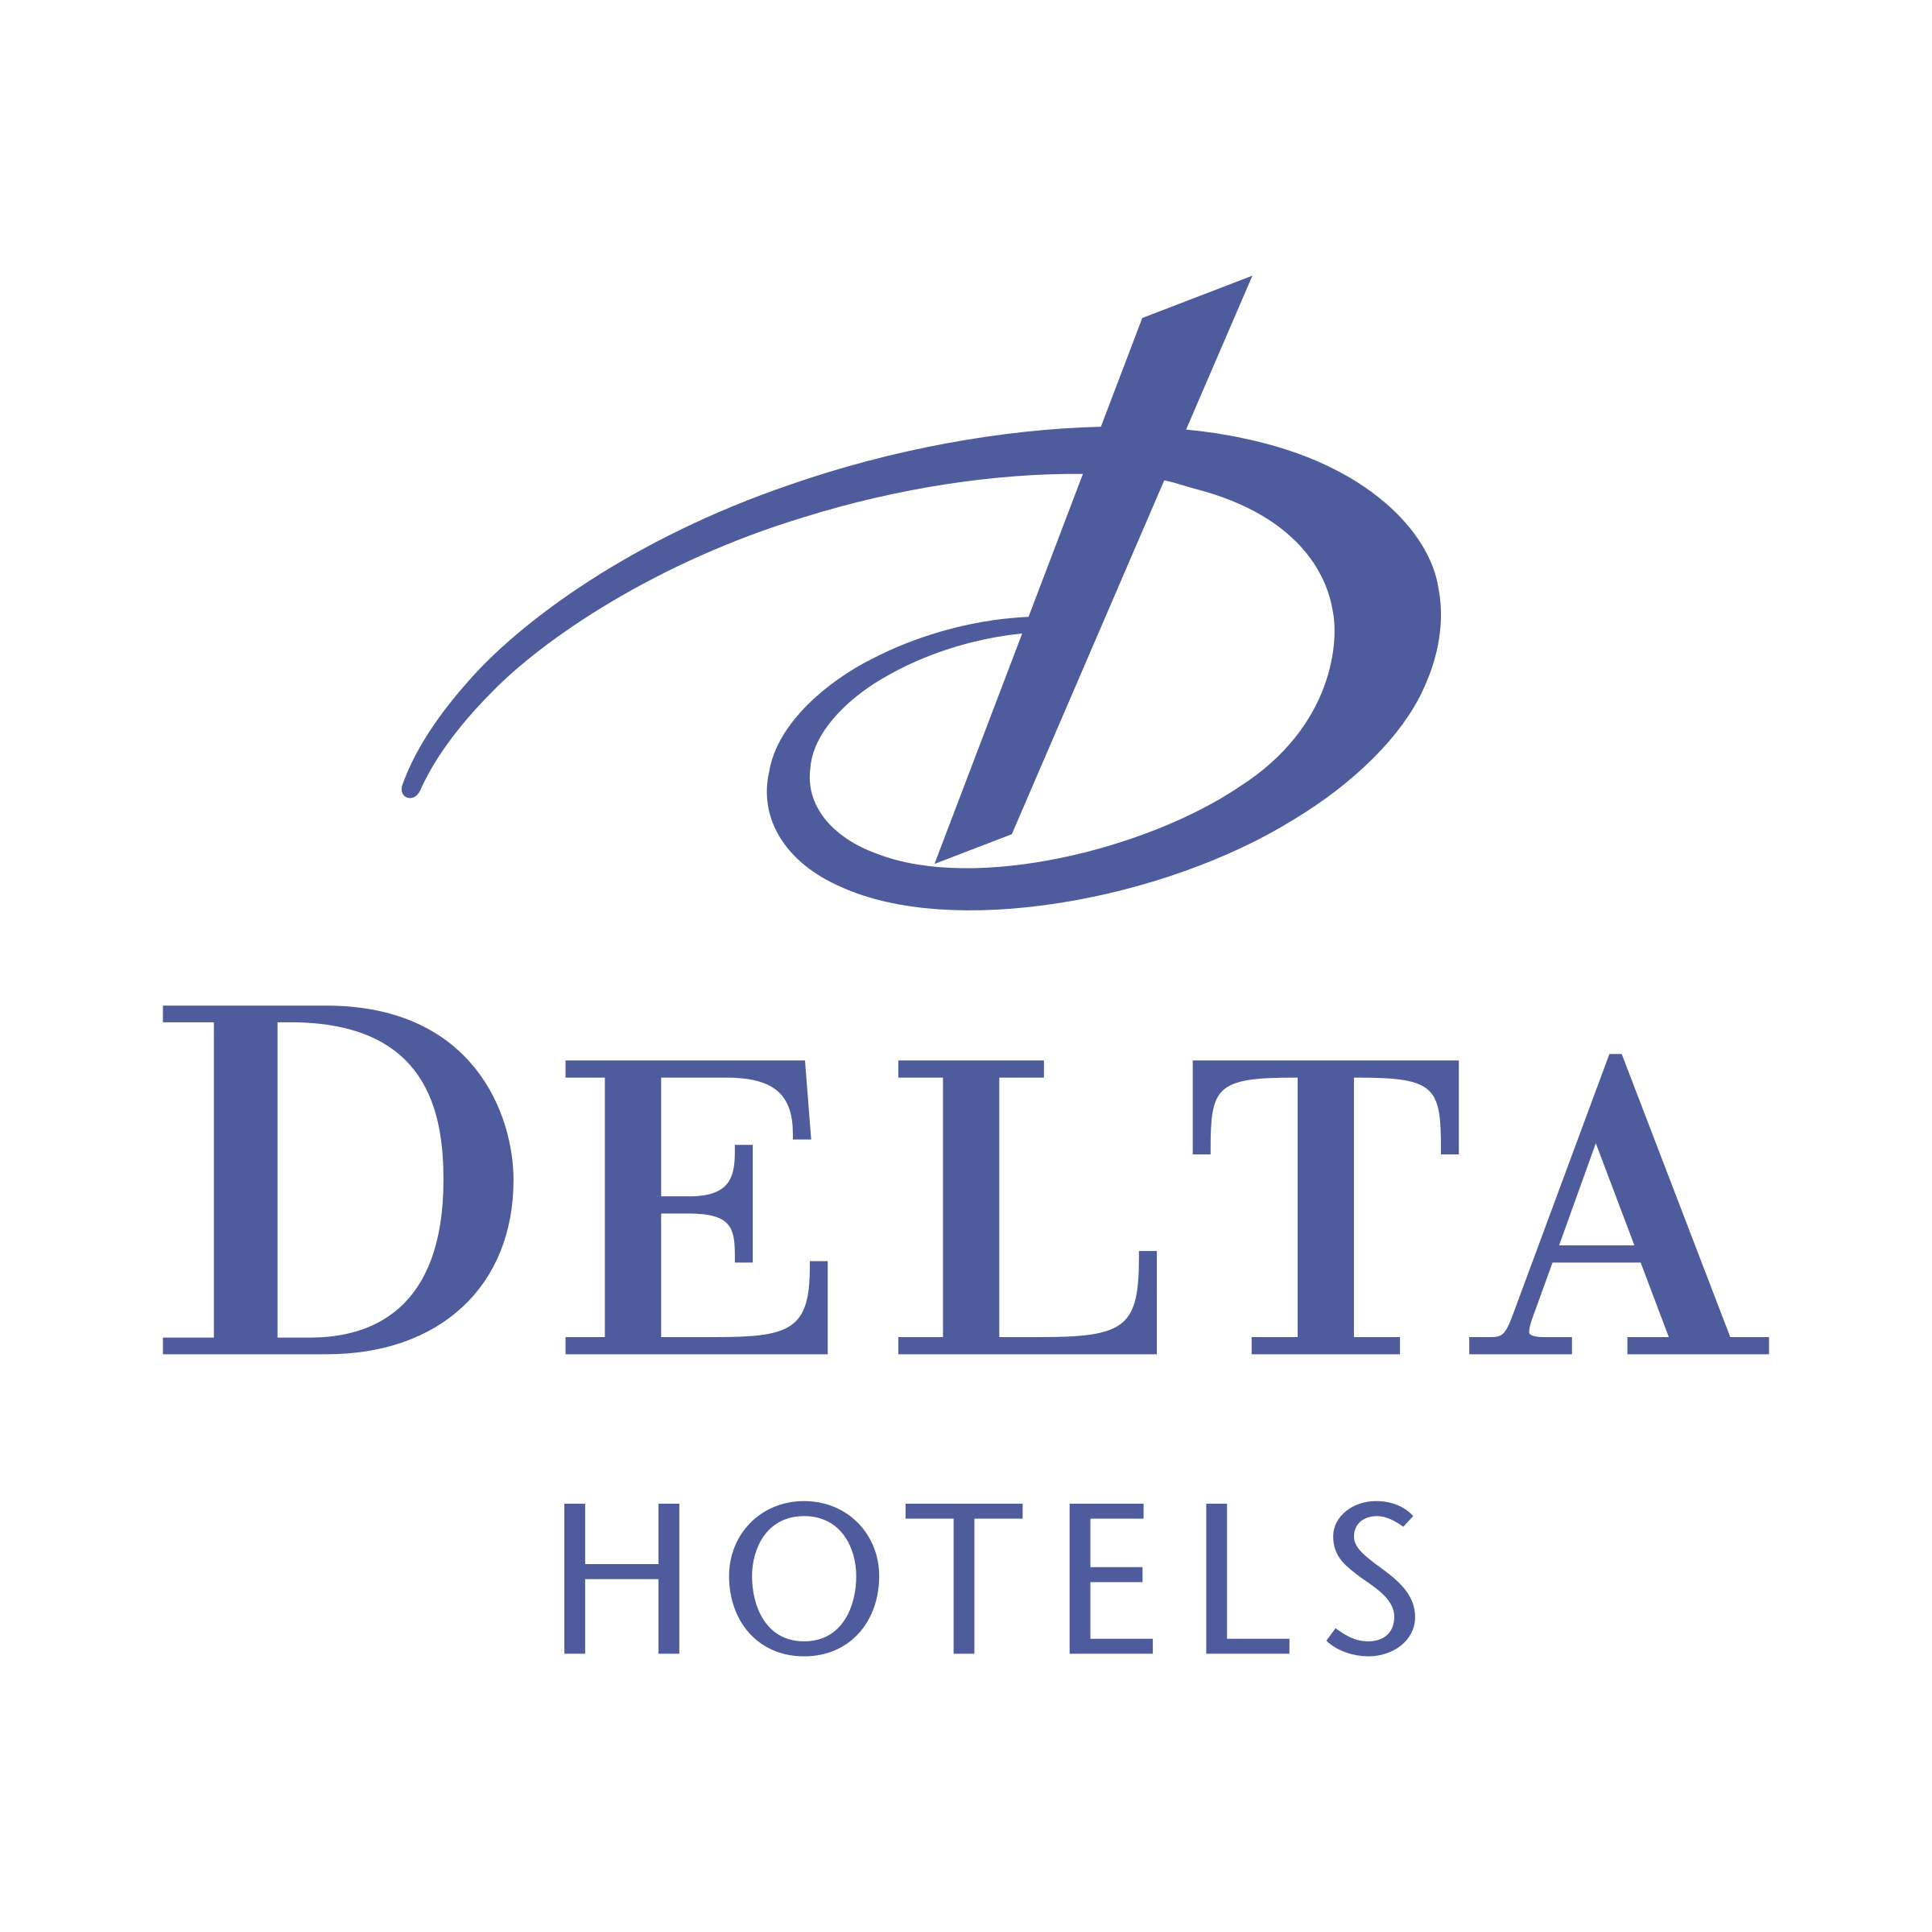 Delta Hotels Logo PNG Transparent